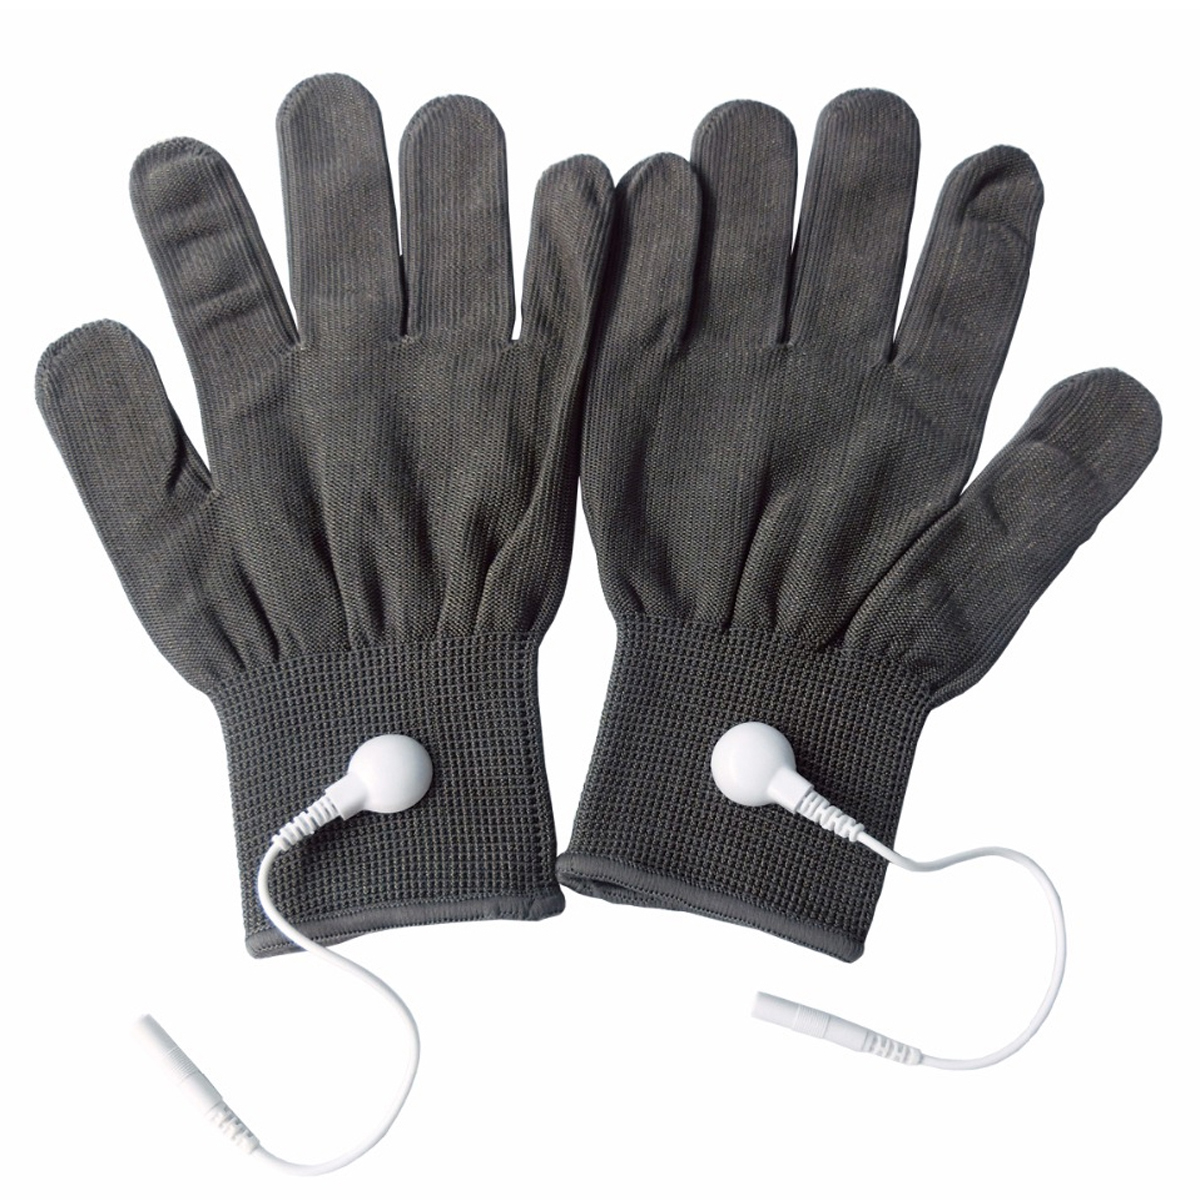 5 Pairs Pack Conductive Massage Gloves physiotherapy electrotherapy electrode Gloves Deep Gray